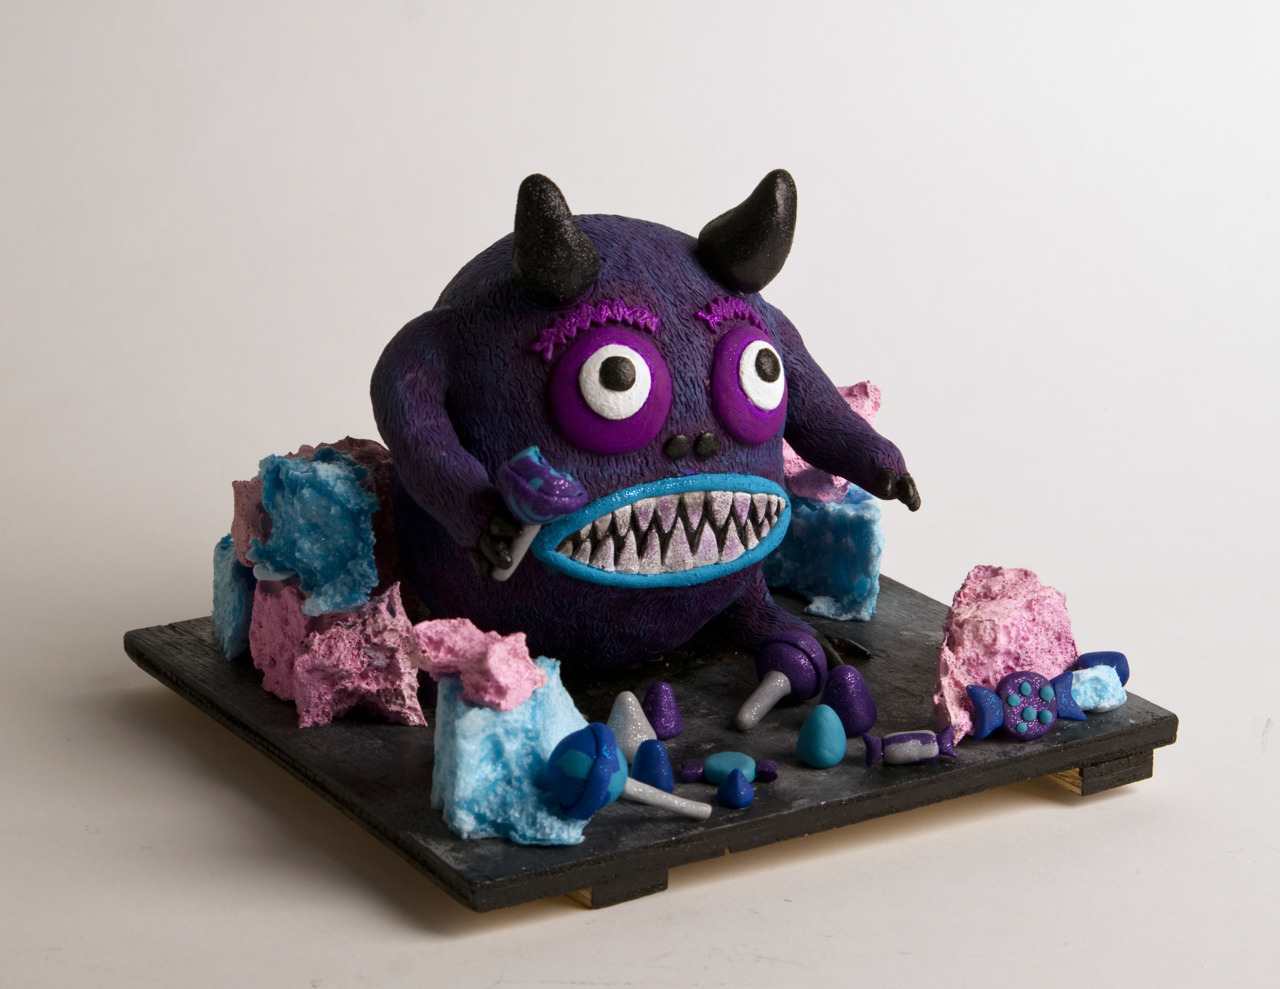 Candy Monster fully finished. Done in Super Sculpey, painted with acrylics.